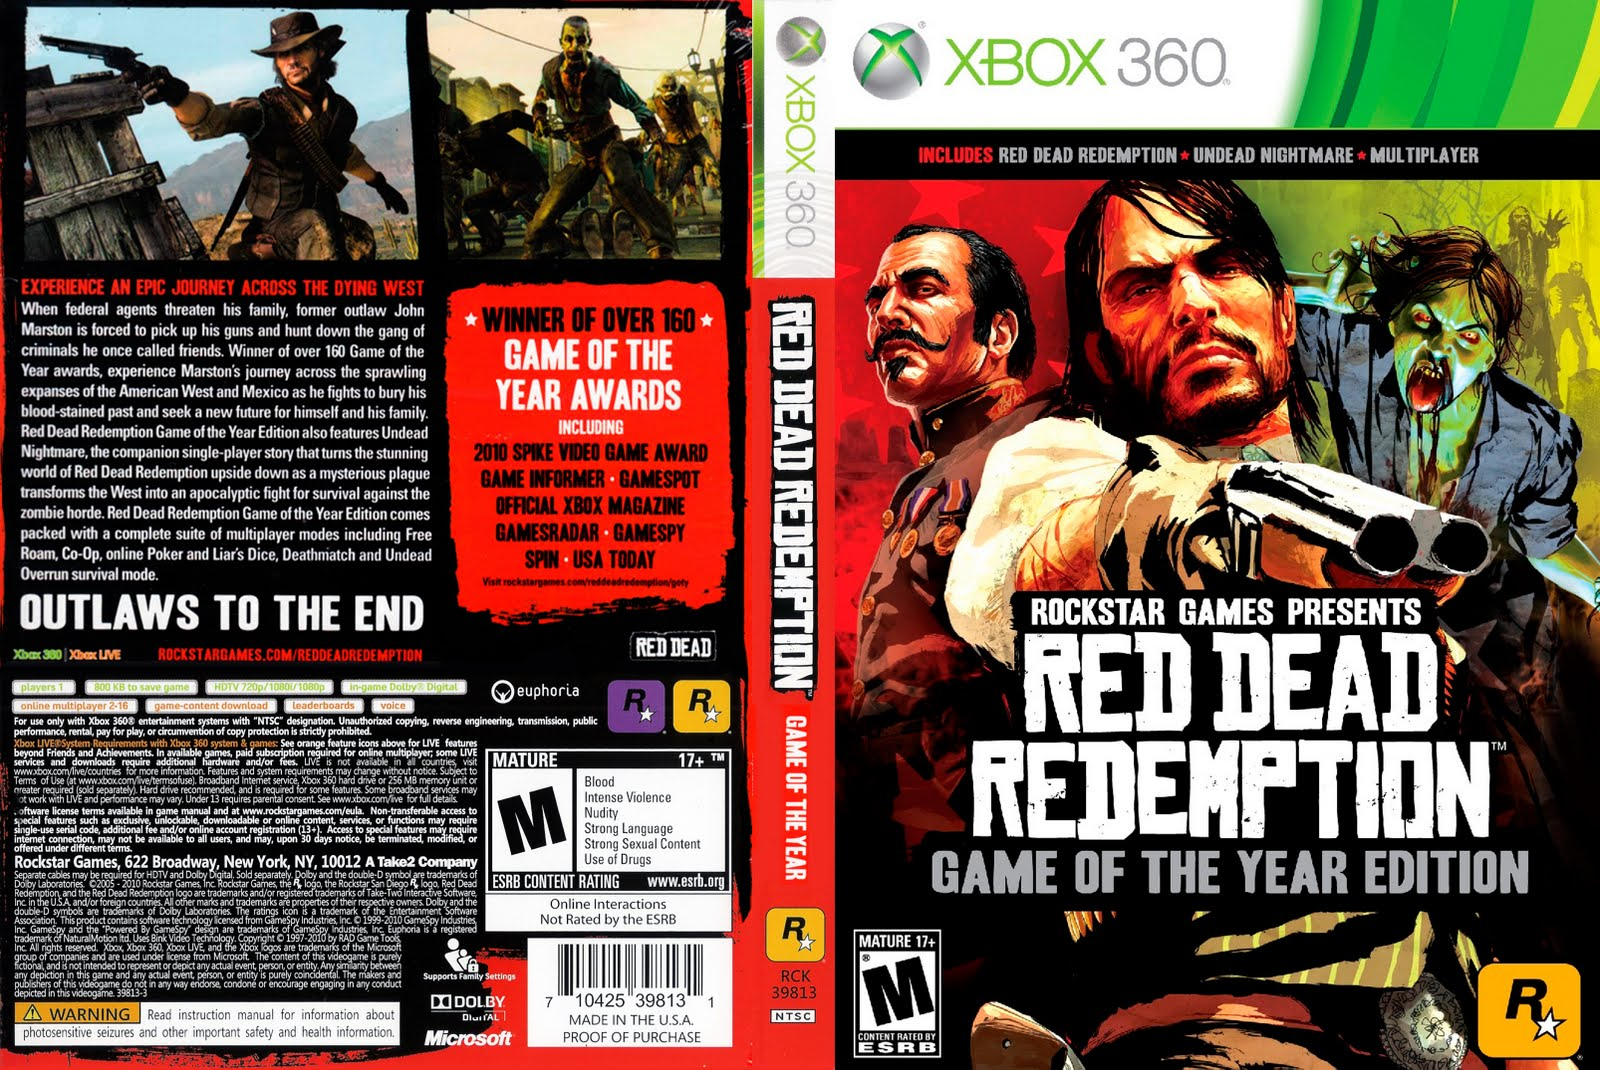 Amazoncom red dead redemption game of the year edition